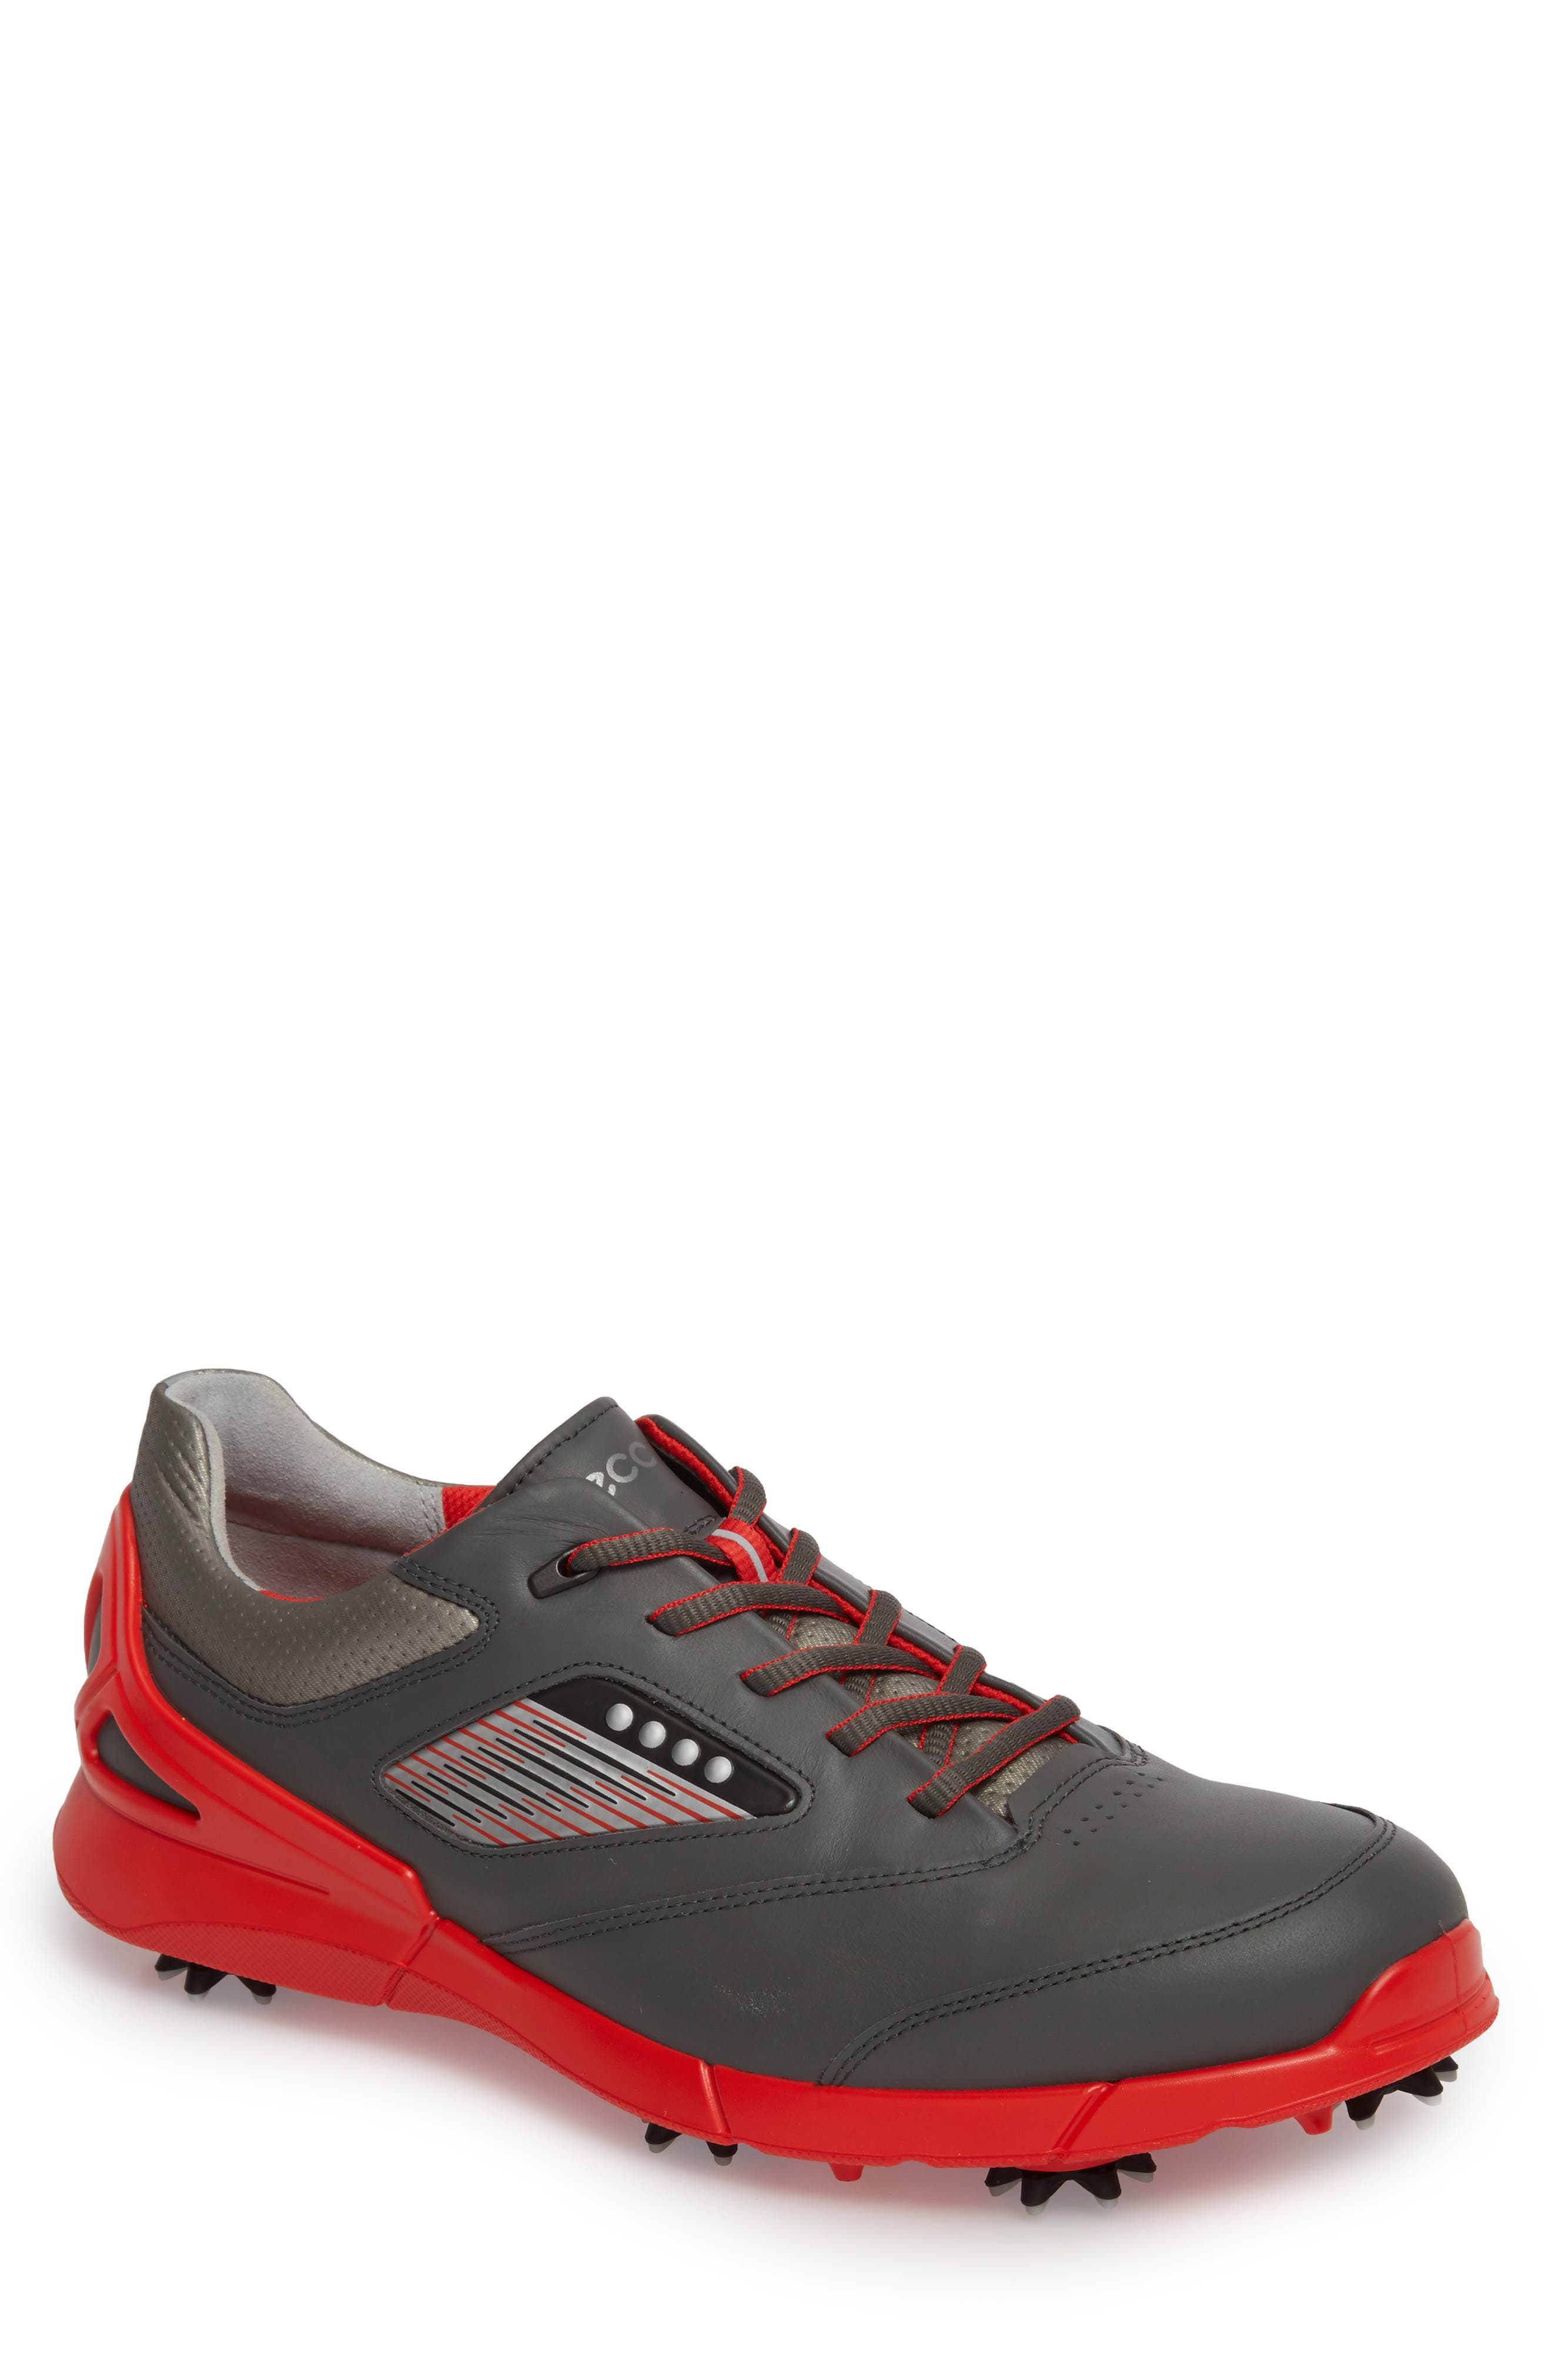 Base One Golf Shoe,                         Main,                         color, BLACK/ SCARLET LEATHER